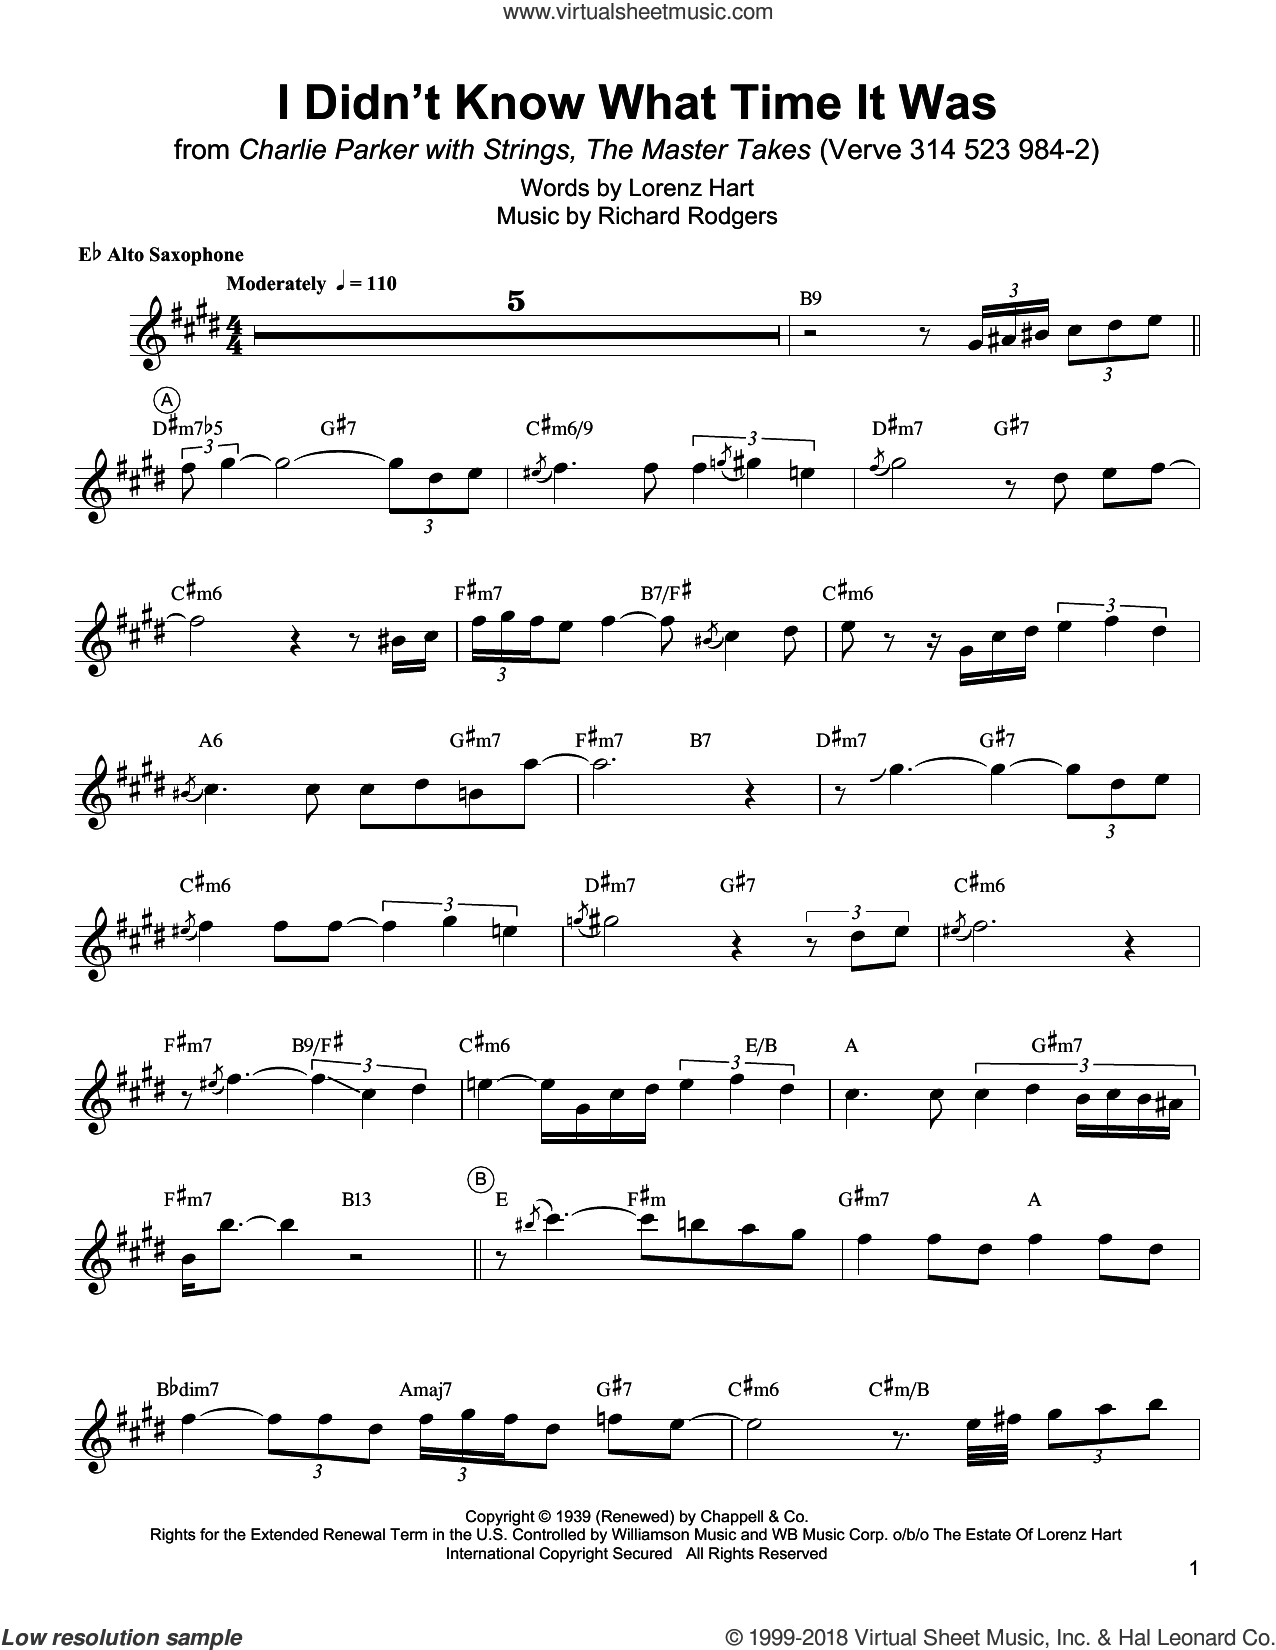 I Didn't Know What Time It Was sheet music for alto saxophone (transcription) by Charlie Parker, Lorenz Hart and Richard Rodgers, intermediate skill level